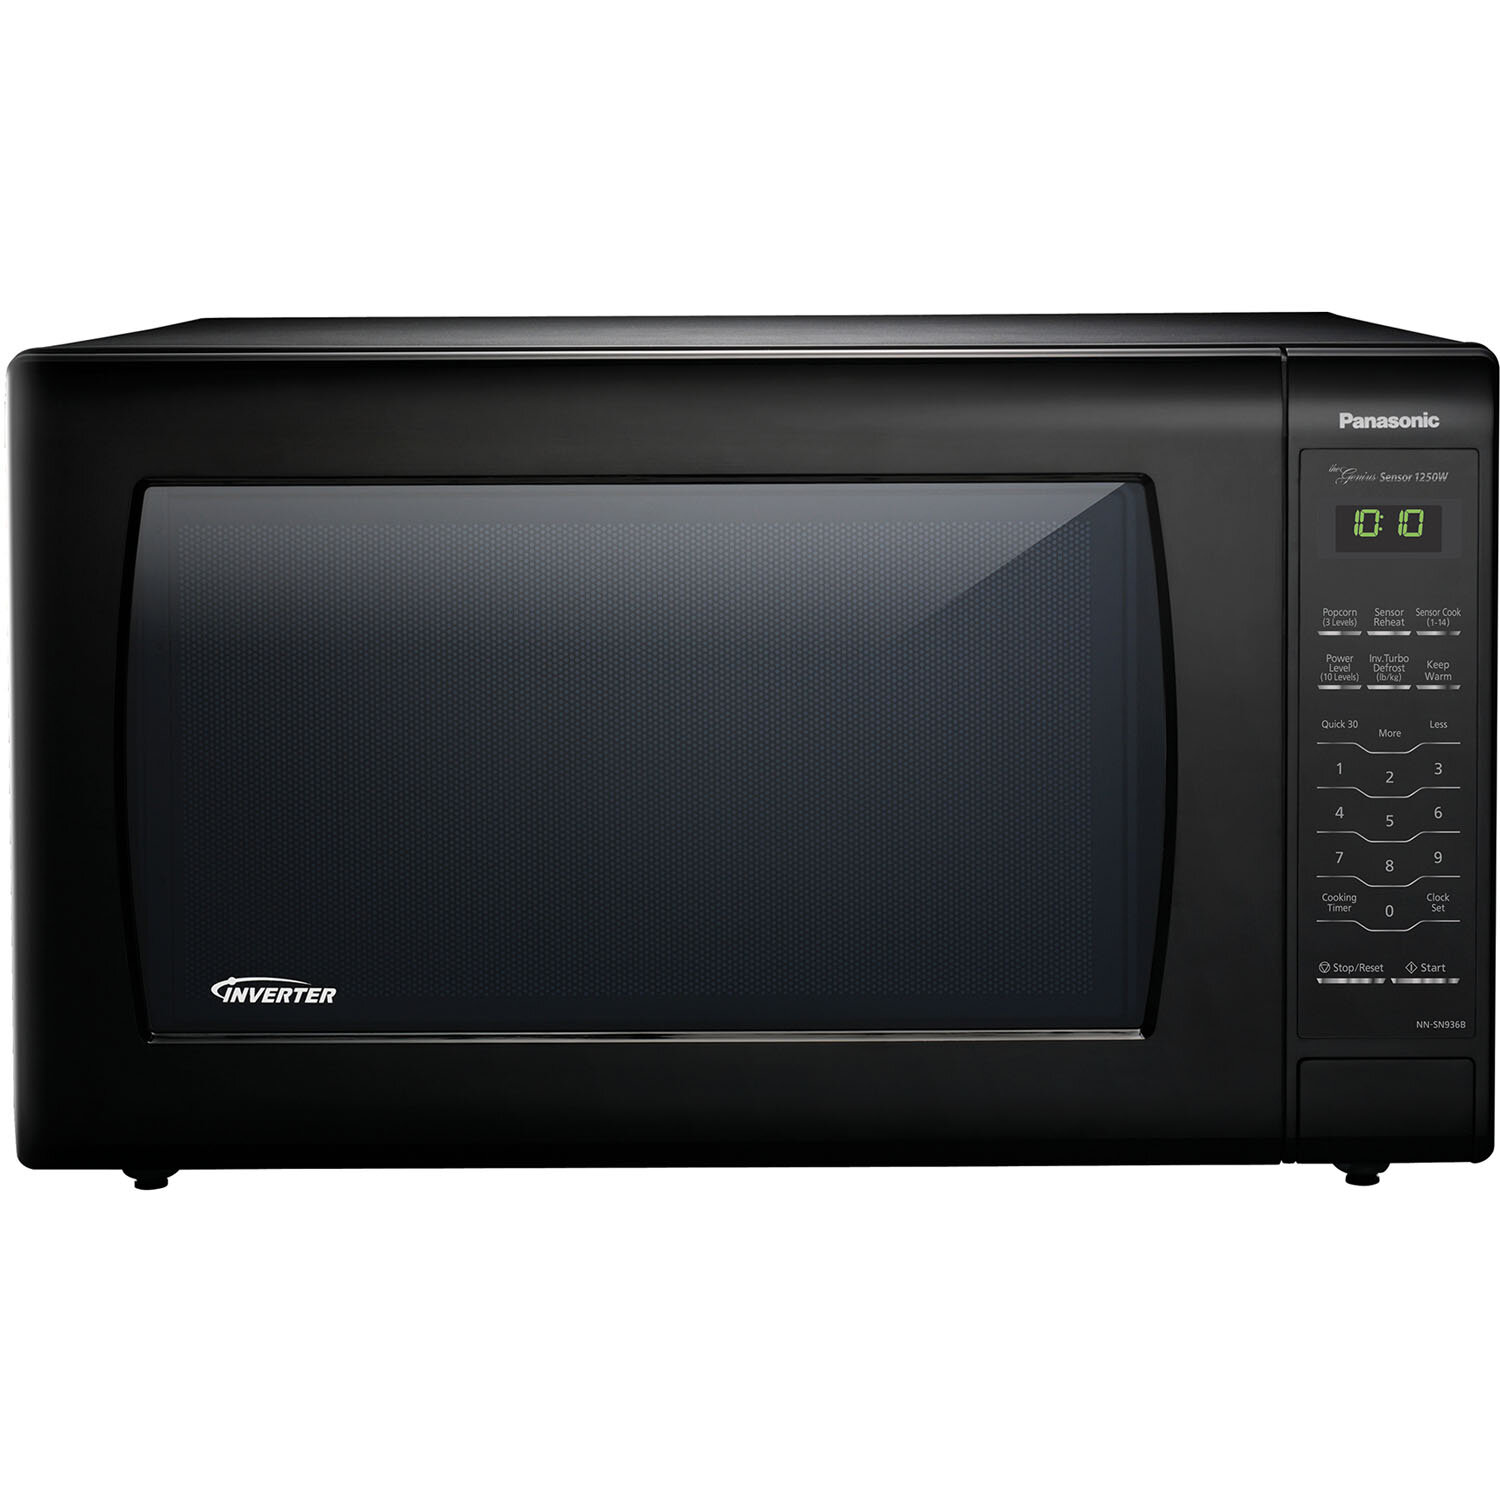 Panasonic Genius Sensor Microwave With Inverter Technology